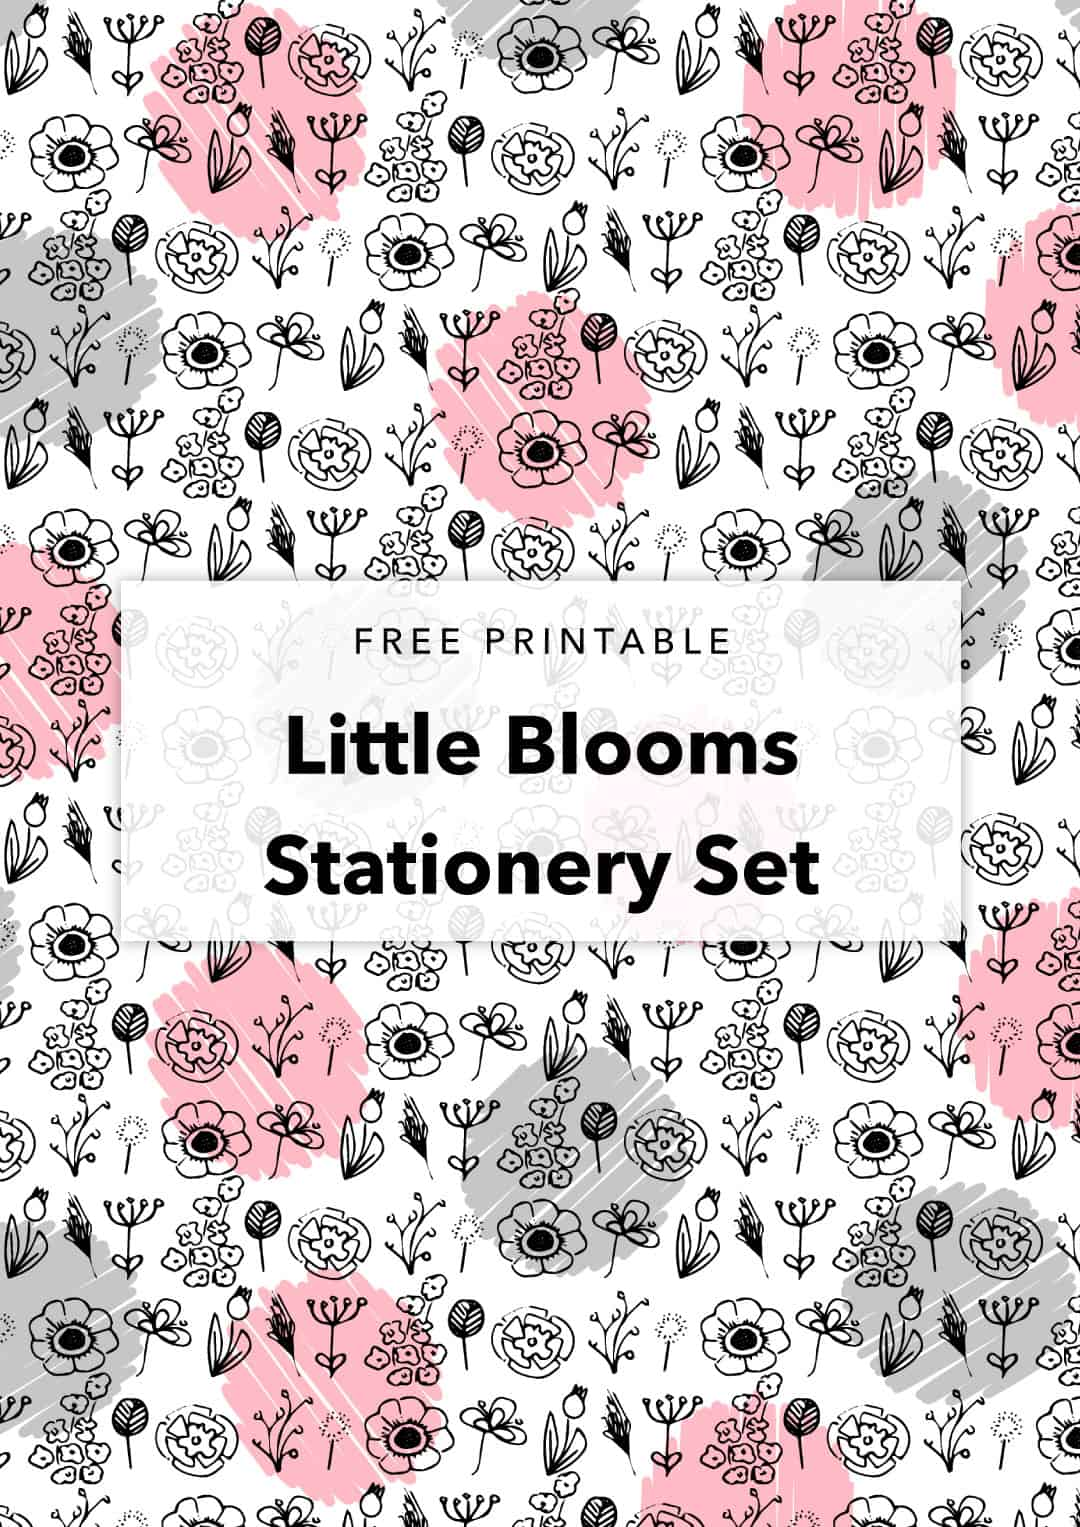 free printable little blooms stationery set